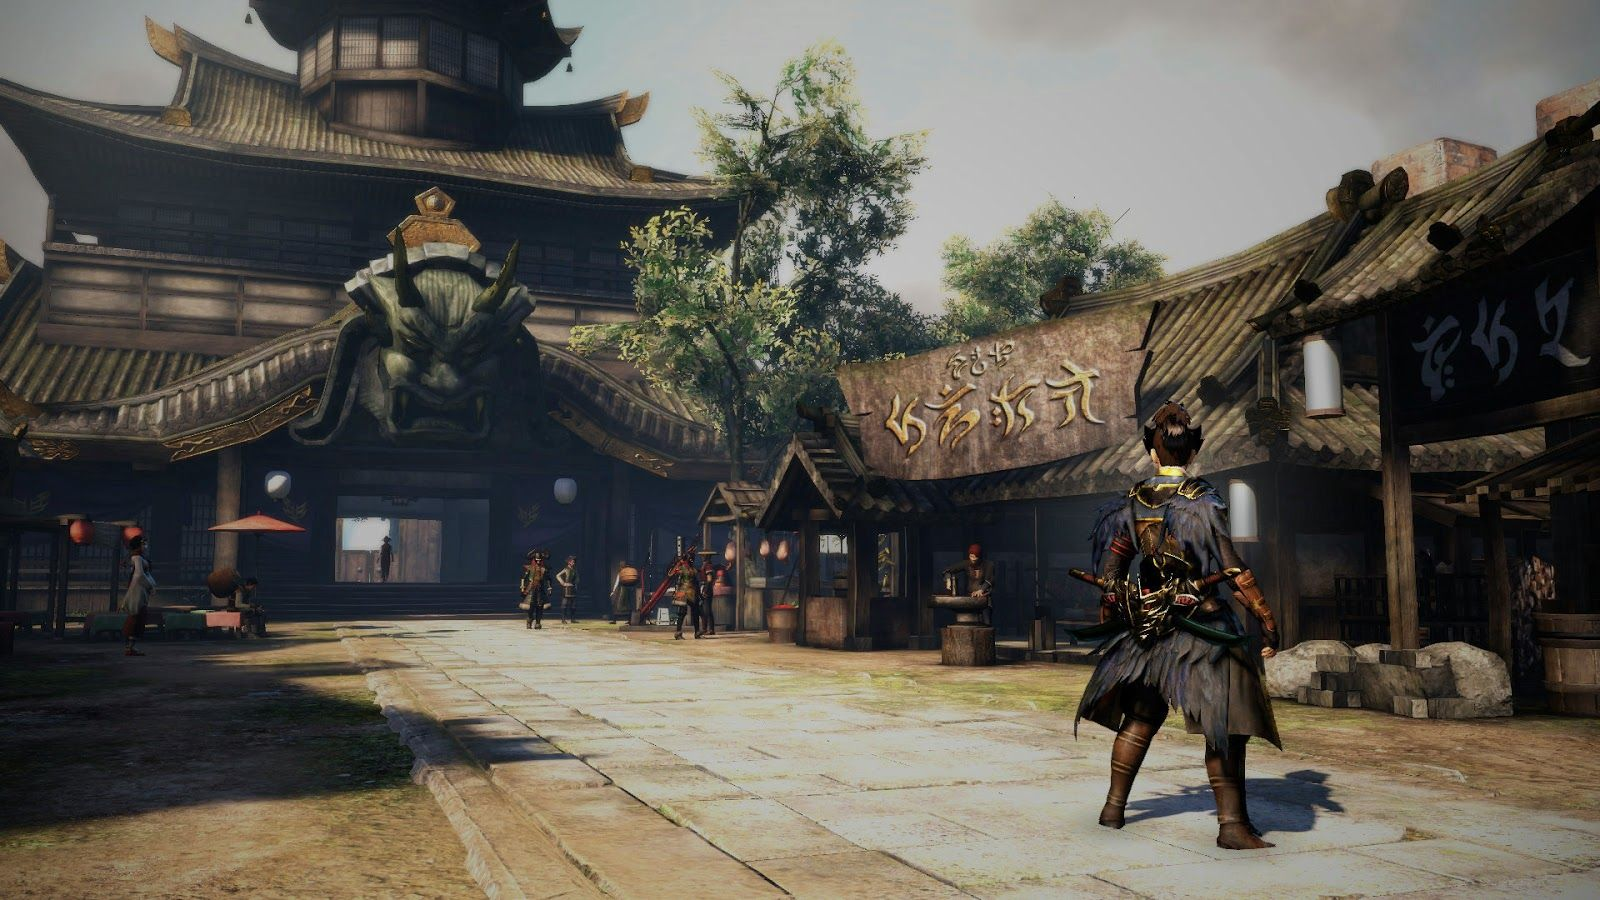 Toukiden 2 game screenshot 1 Games, News games, Pc ps4